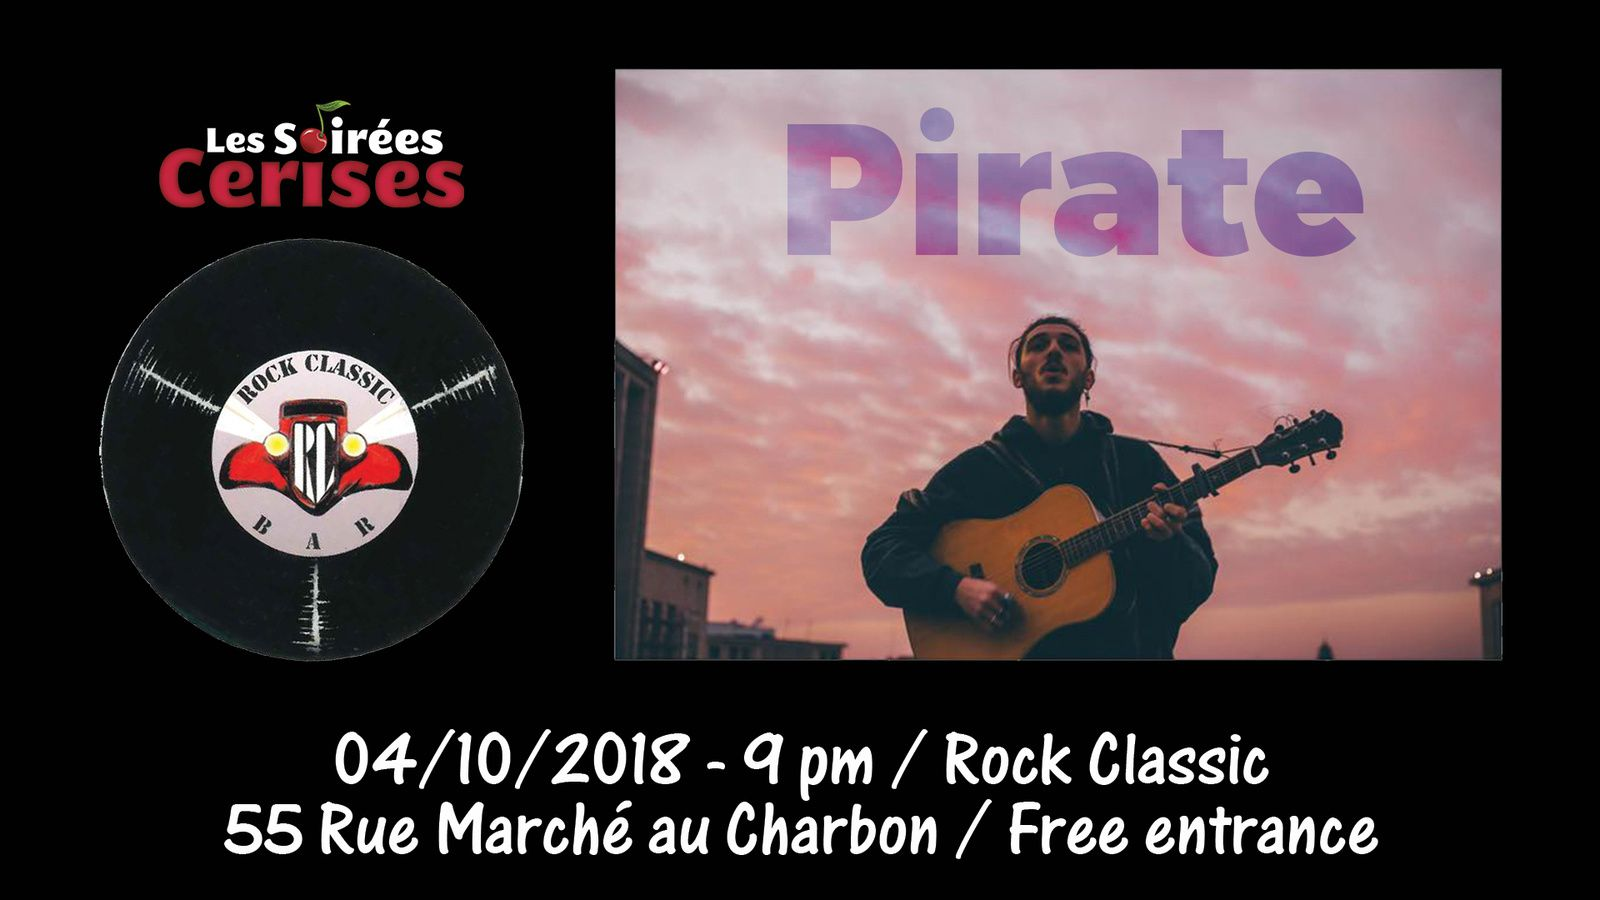 ▶ Pirate @ RocK Classic - 04/10/2018 - 21h00 - Entrée gratuite / Free entrance